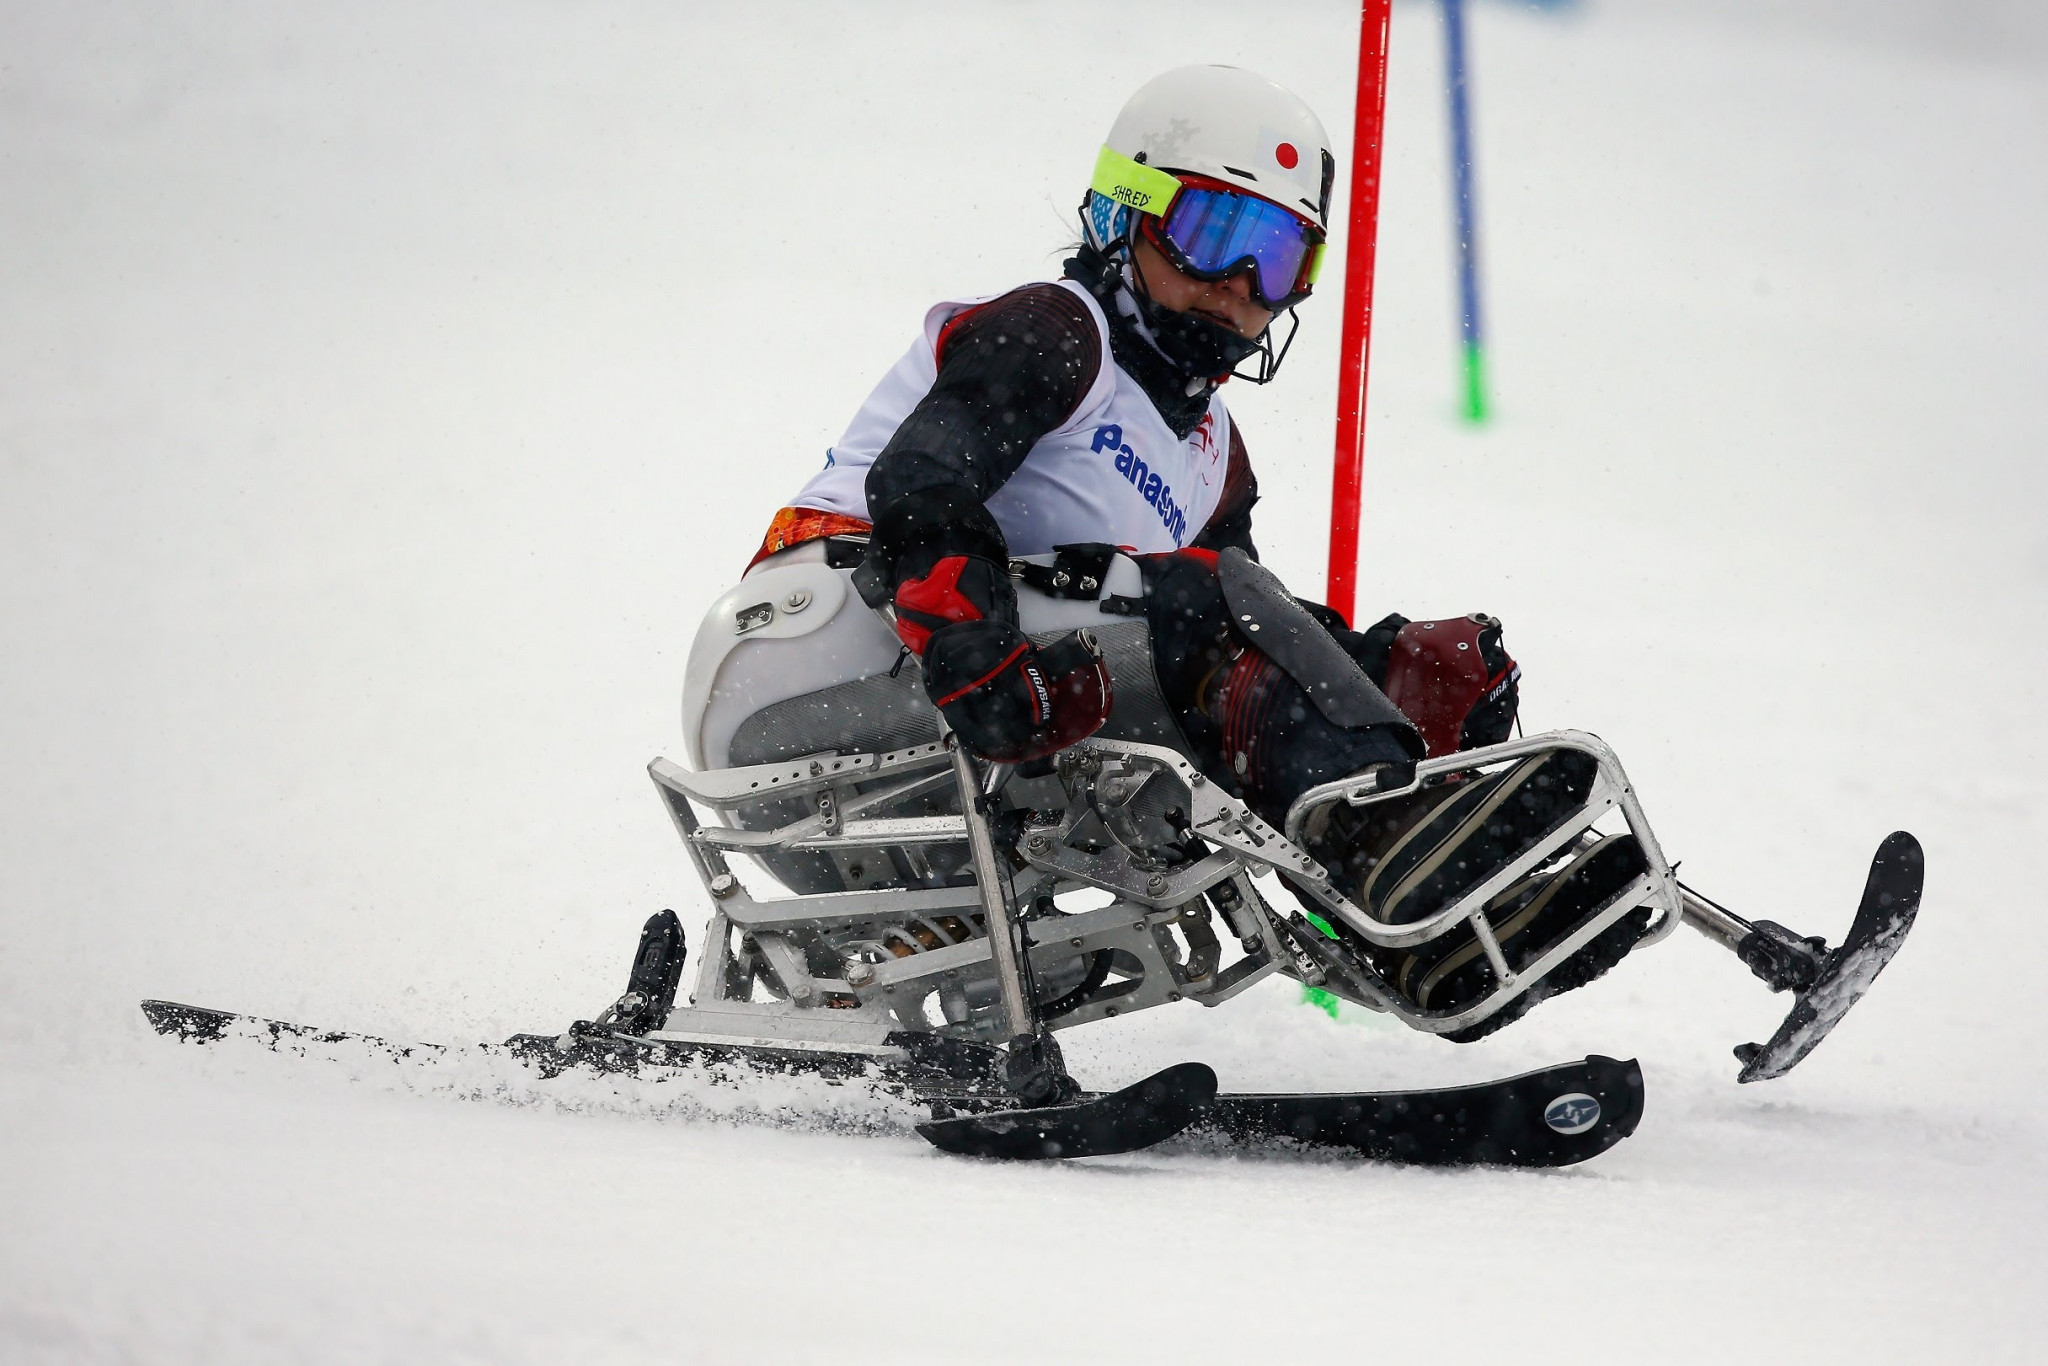 Japan's Yoshiko Tanaka will be among the leading names competing at the first event of the new World Para Alpine Skiing World Cup campaign in St. Moritz ©YouTube